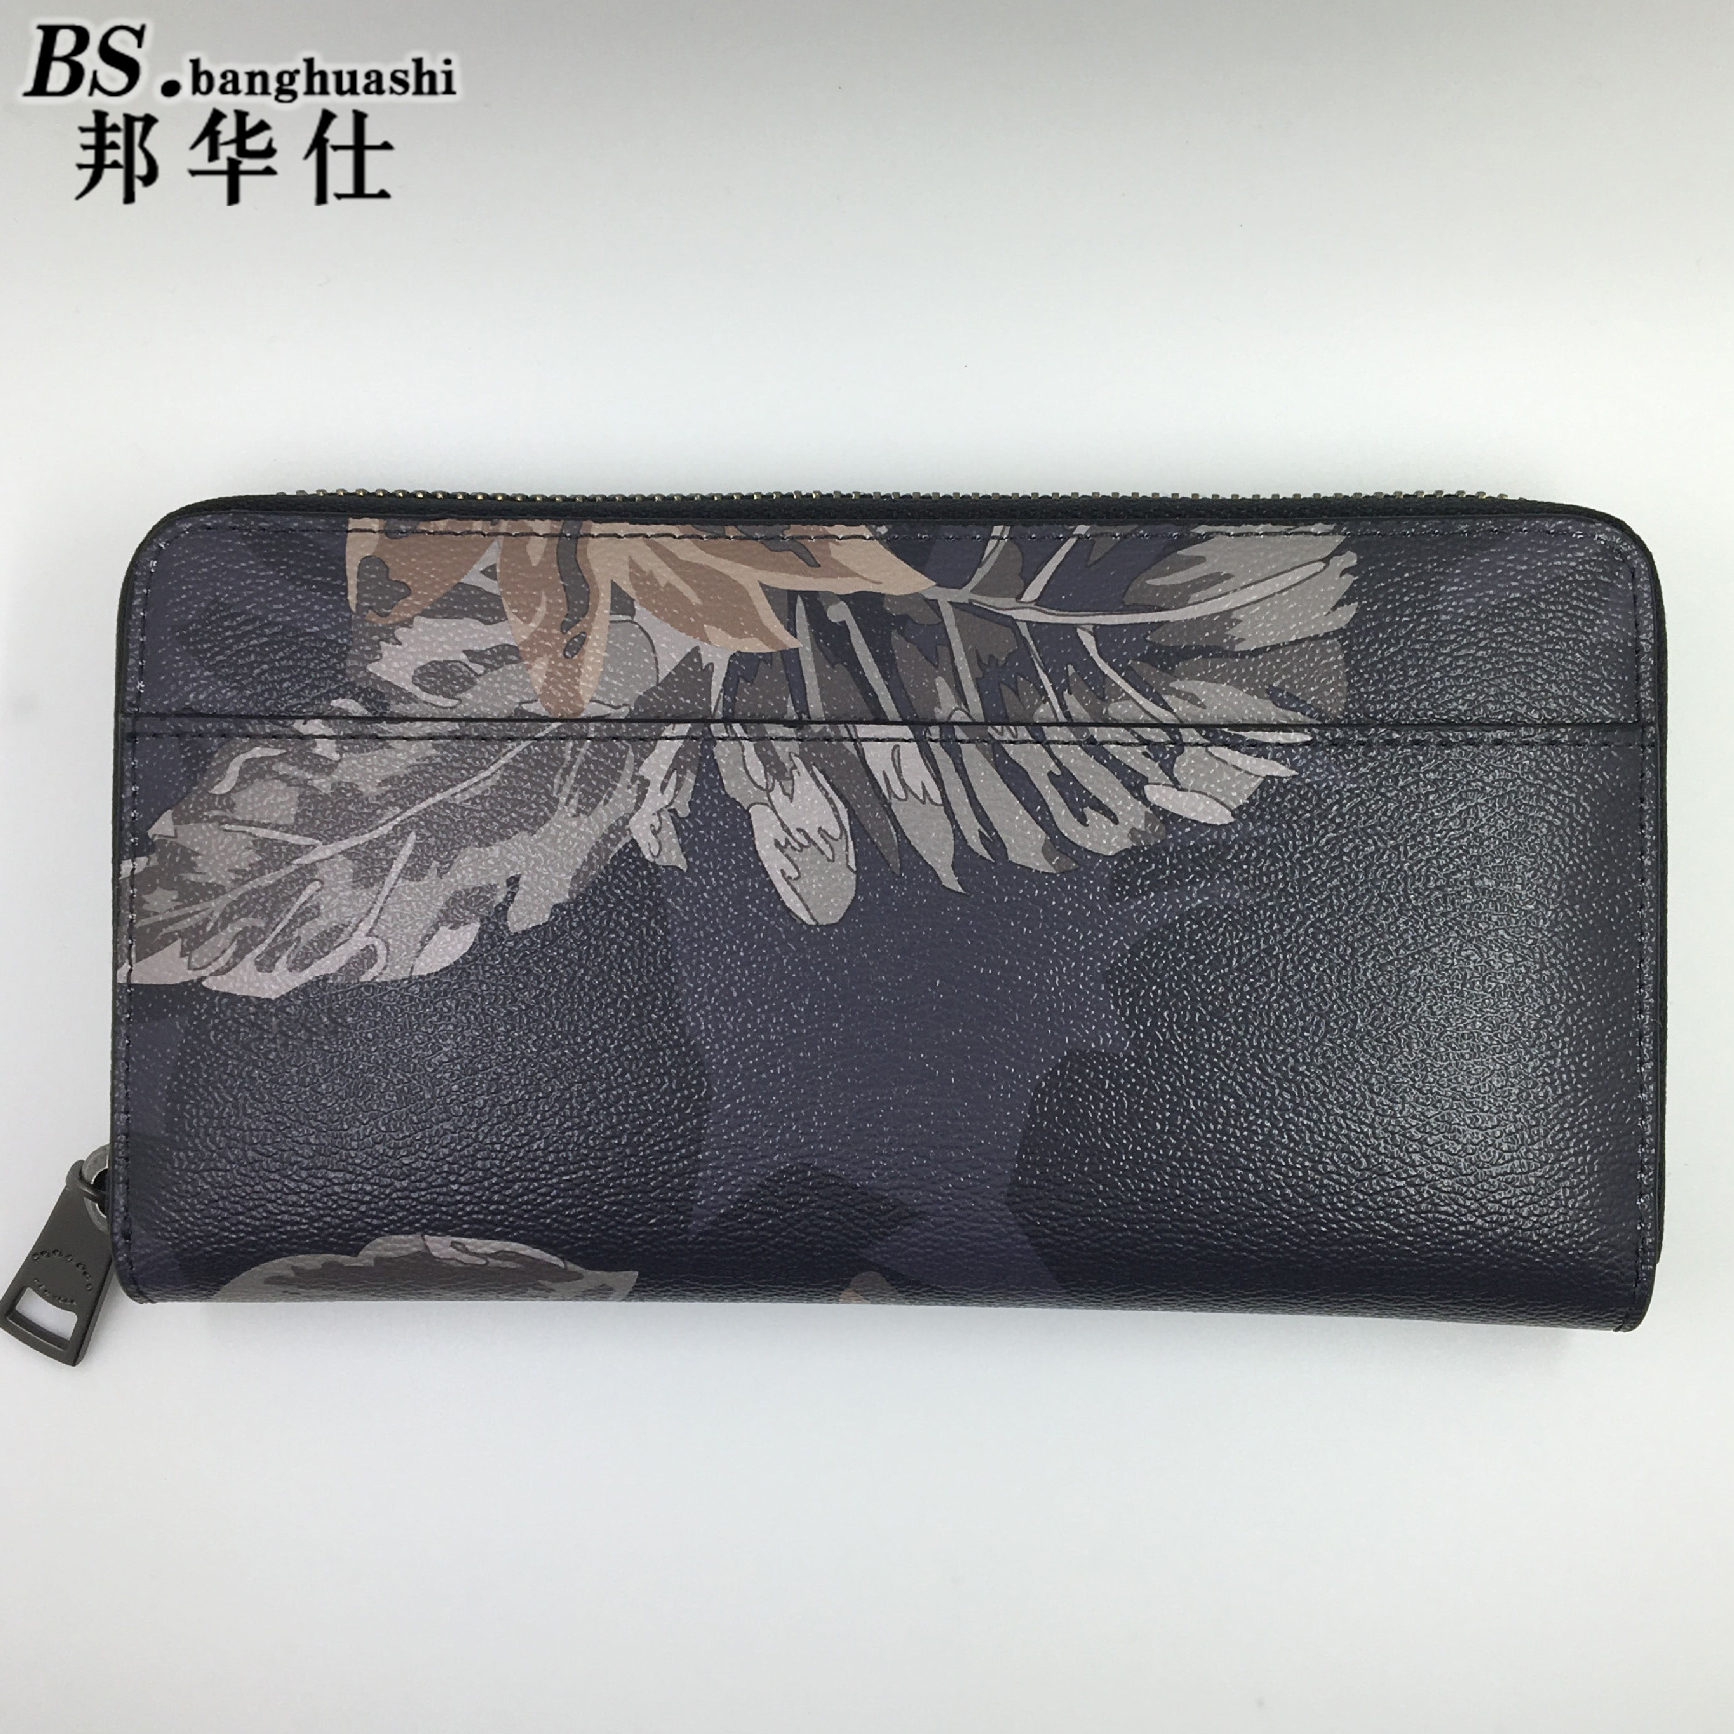 2016 The latest fashion trends Ms. Long wallet leather zipper leaves printed handbag package tide